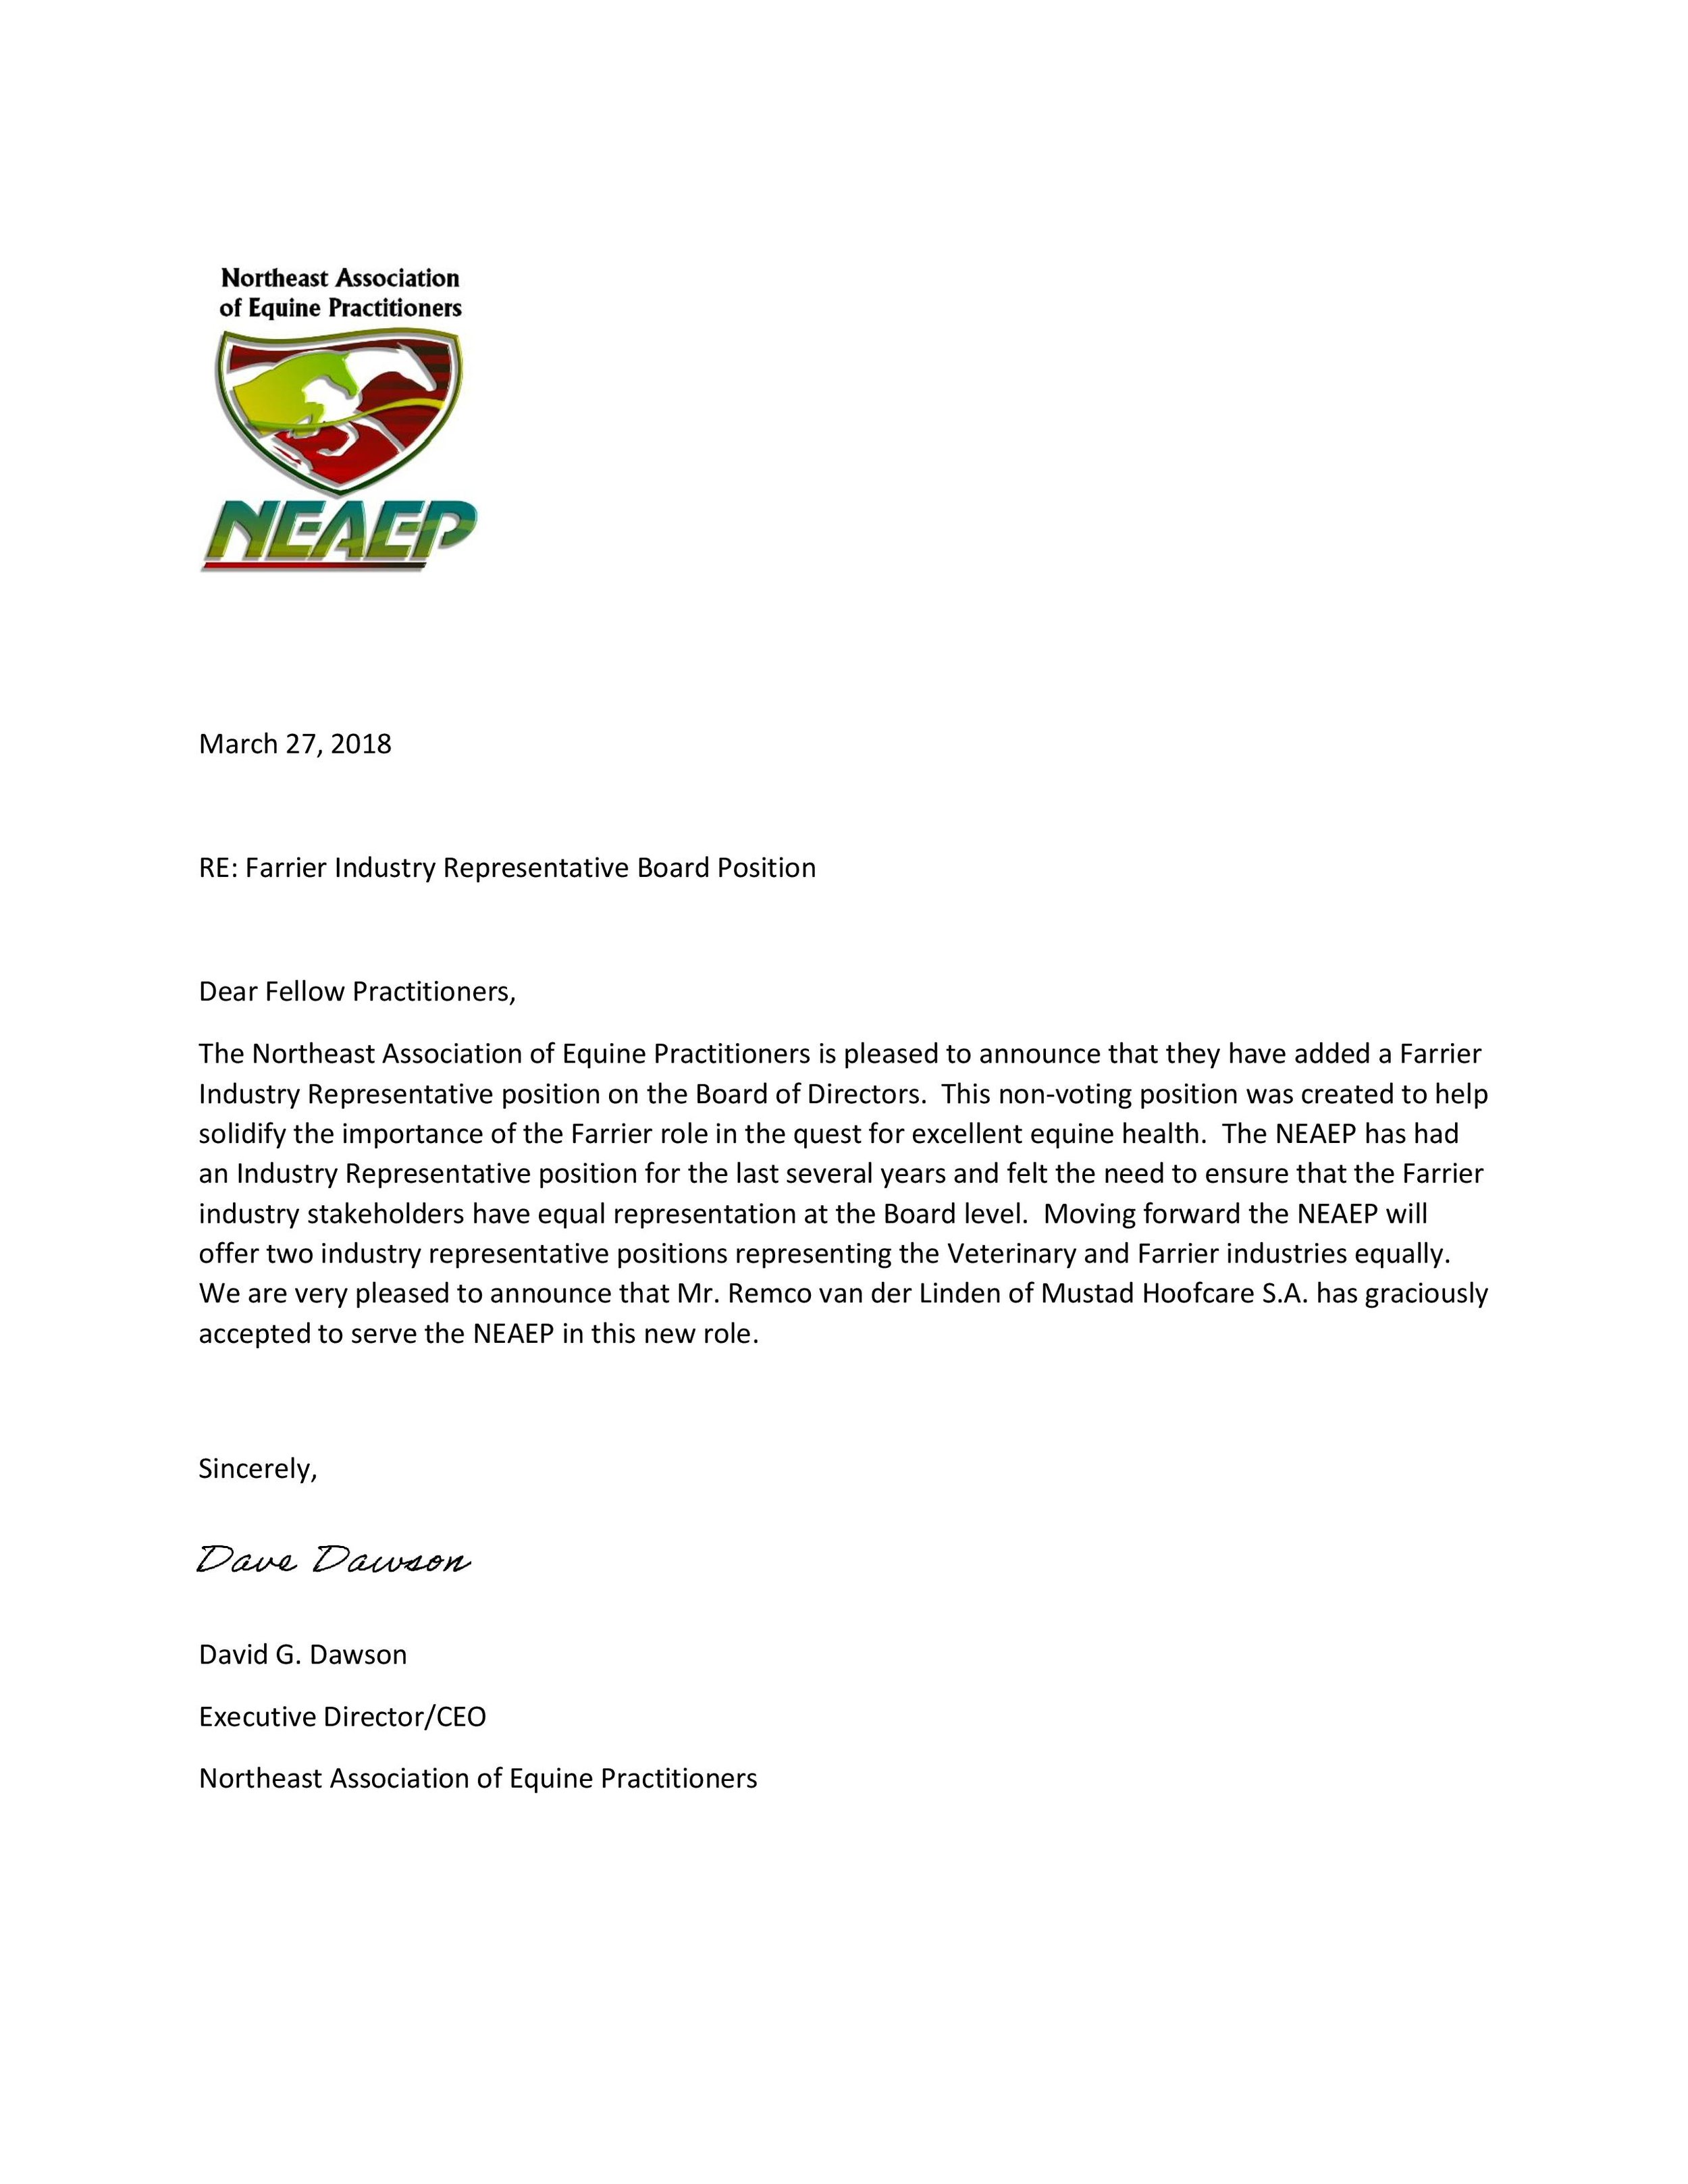 NEAEP Farrier Industry announcement 2018-page-001.jpg